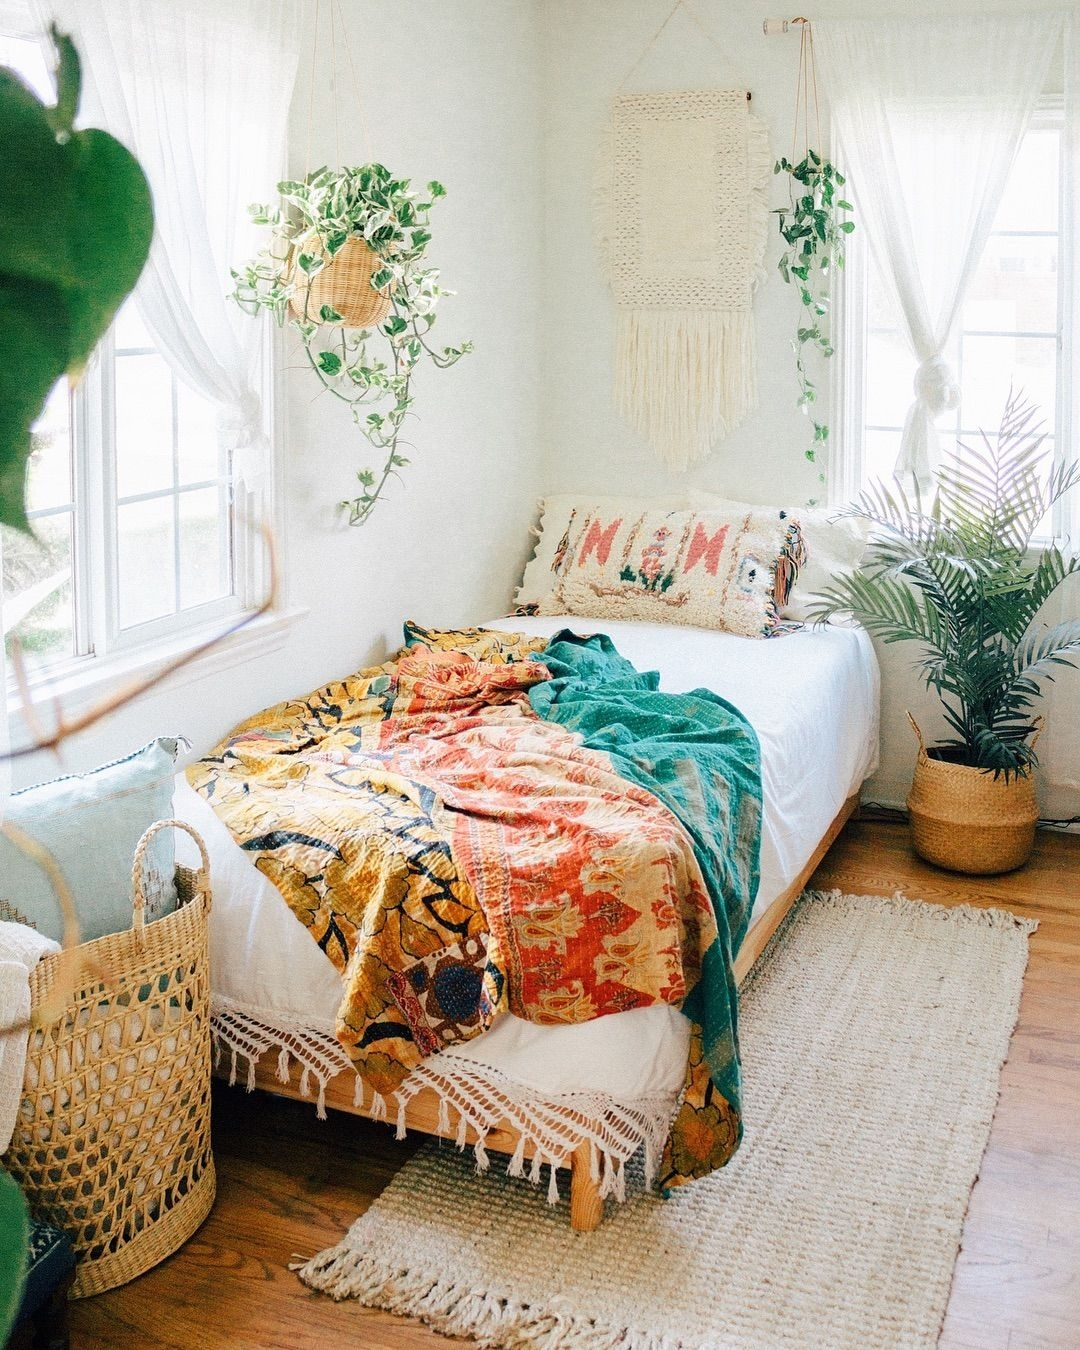 Awe-inspiring Boho Rooms Ideas Pinterest On Charming Eee Excited to Share Our Newly Refreshed Guest Bedroom It On Boho Rooms Ideas Pinterest